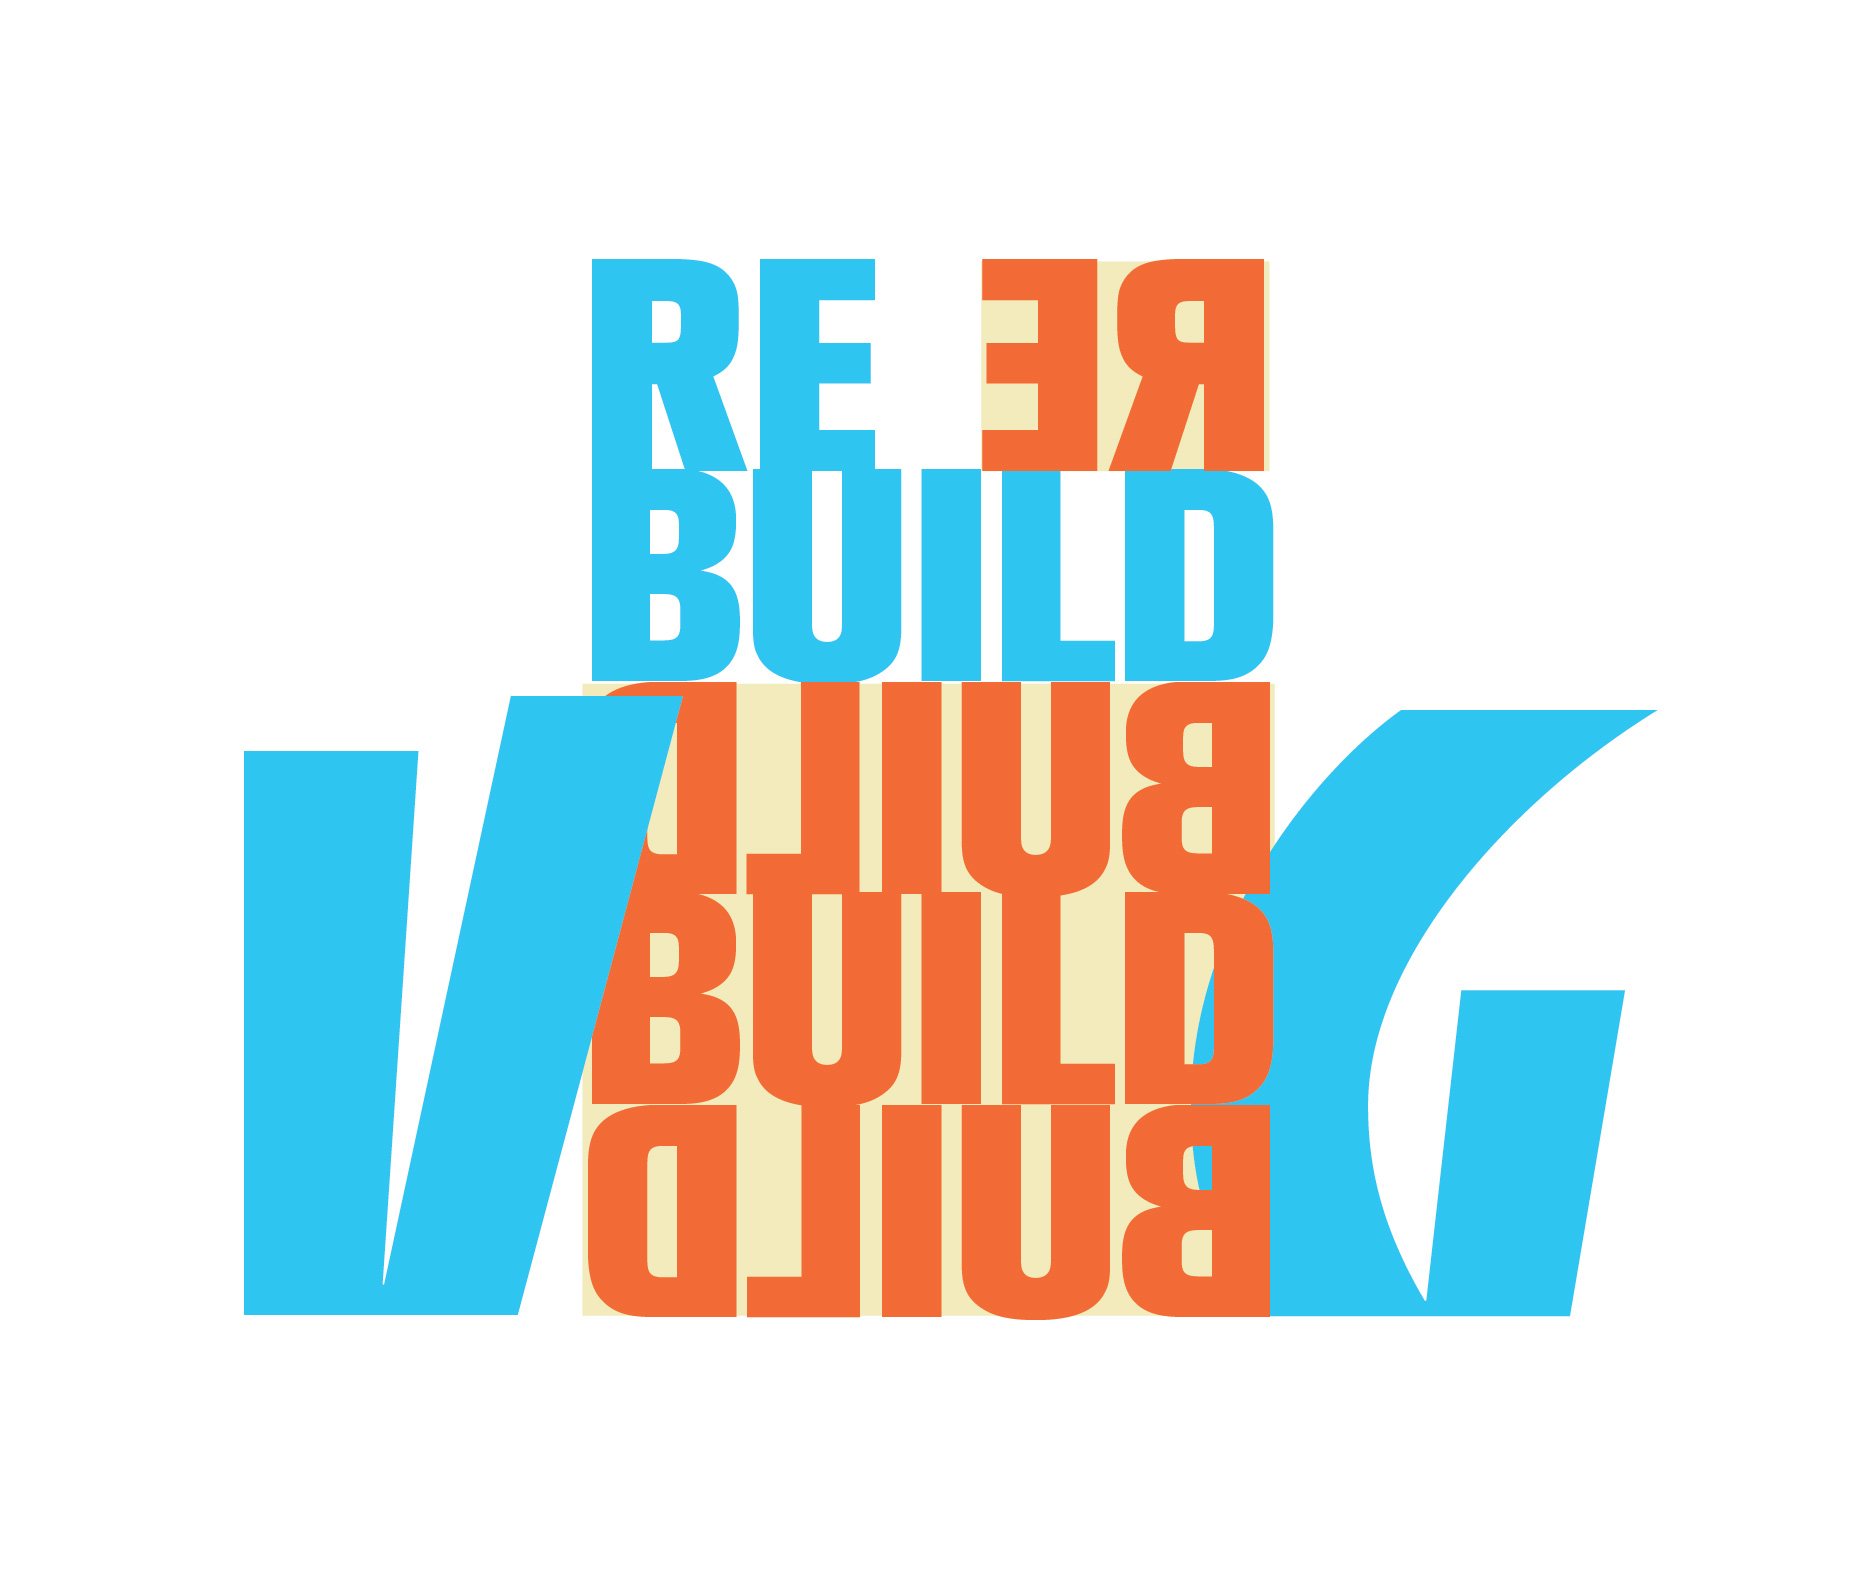 Visit Rebuild V.G. - We appreciate your help!